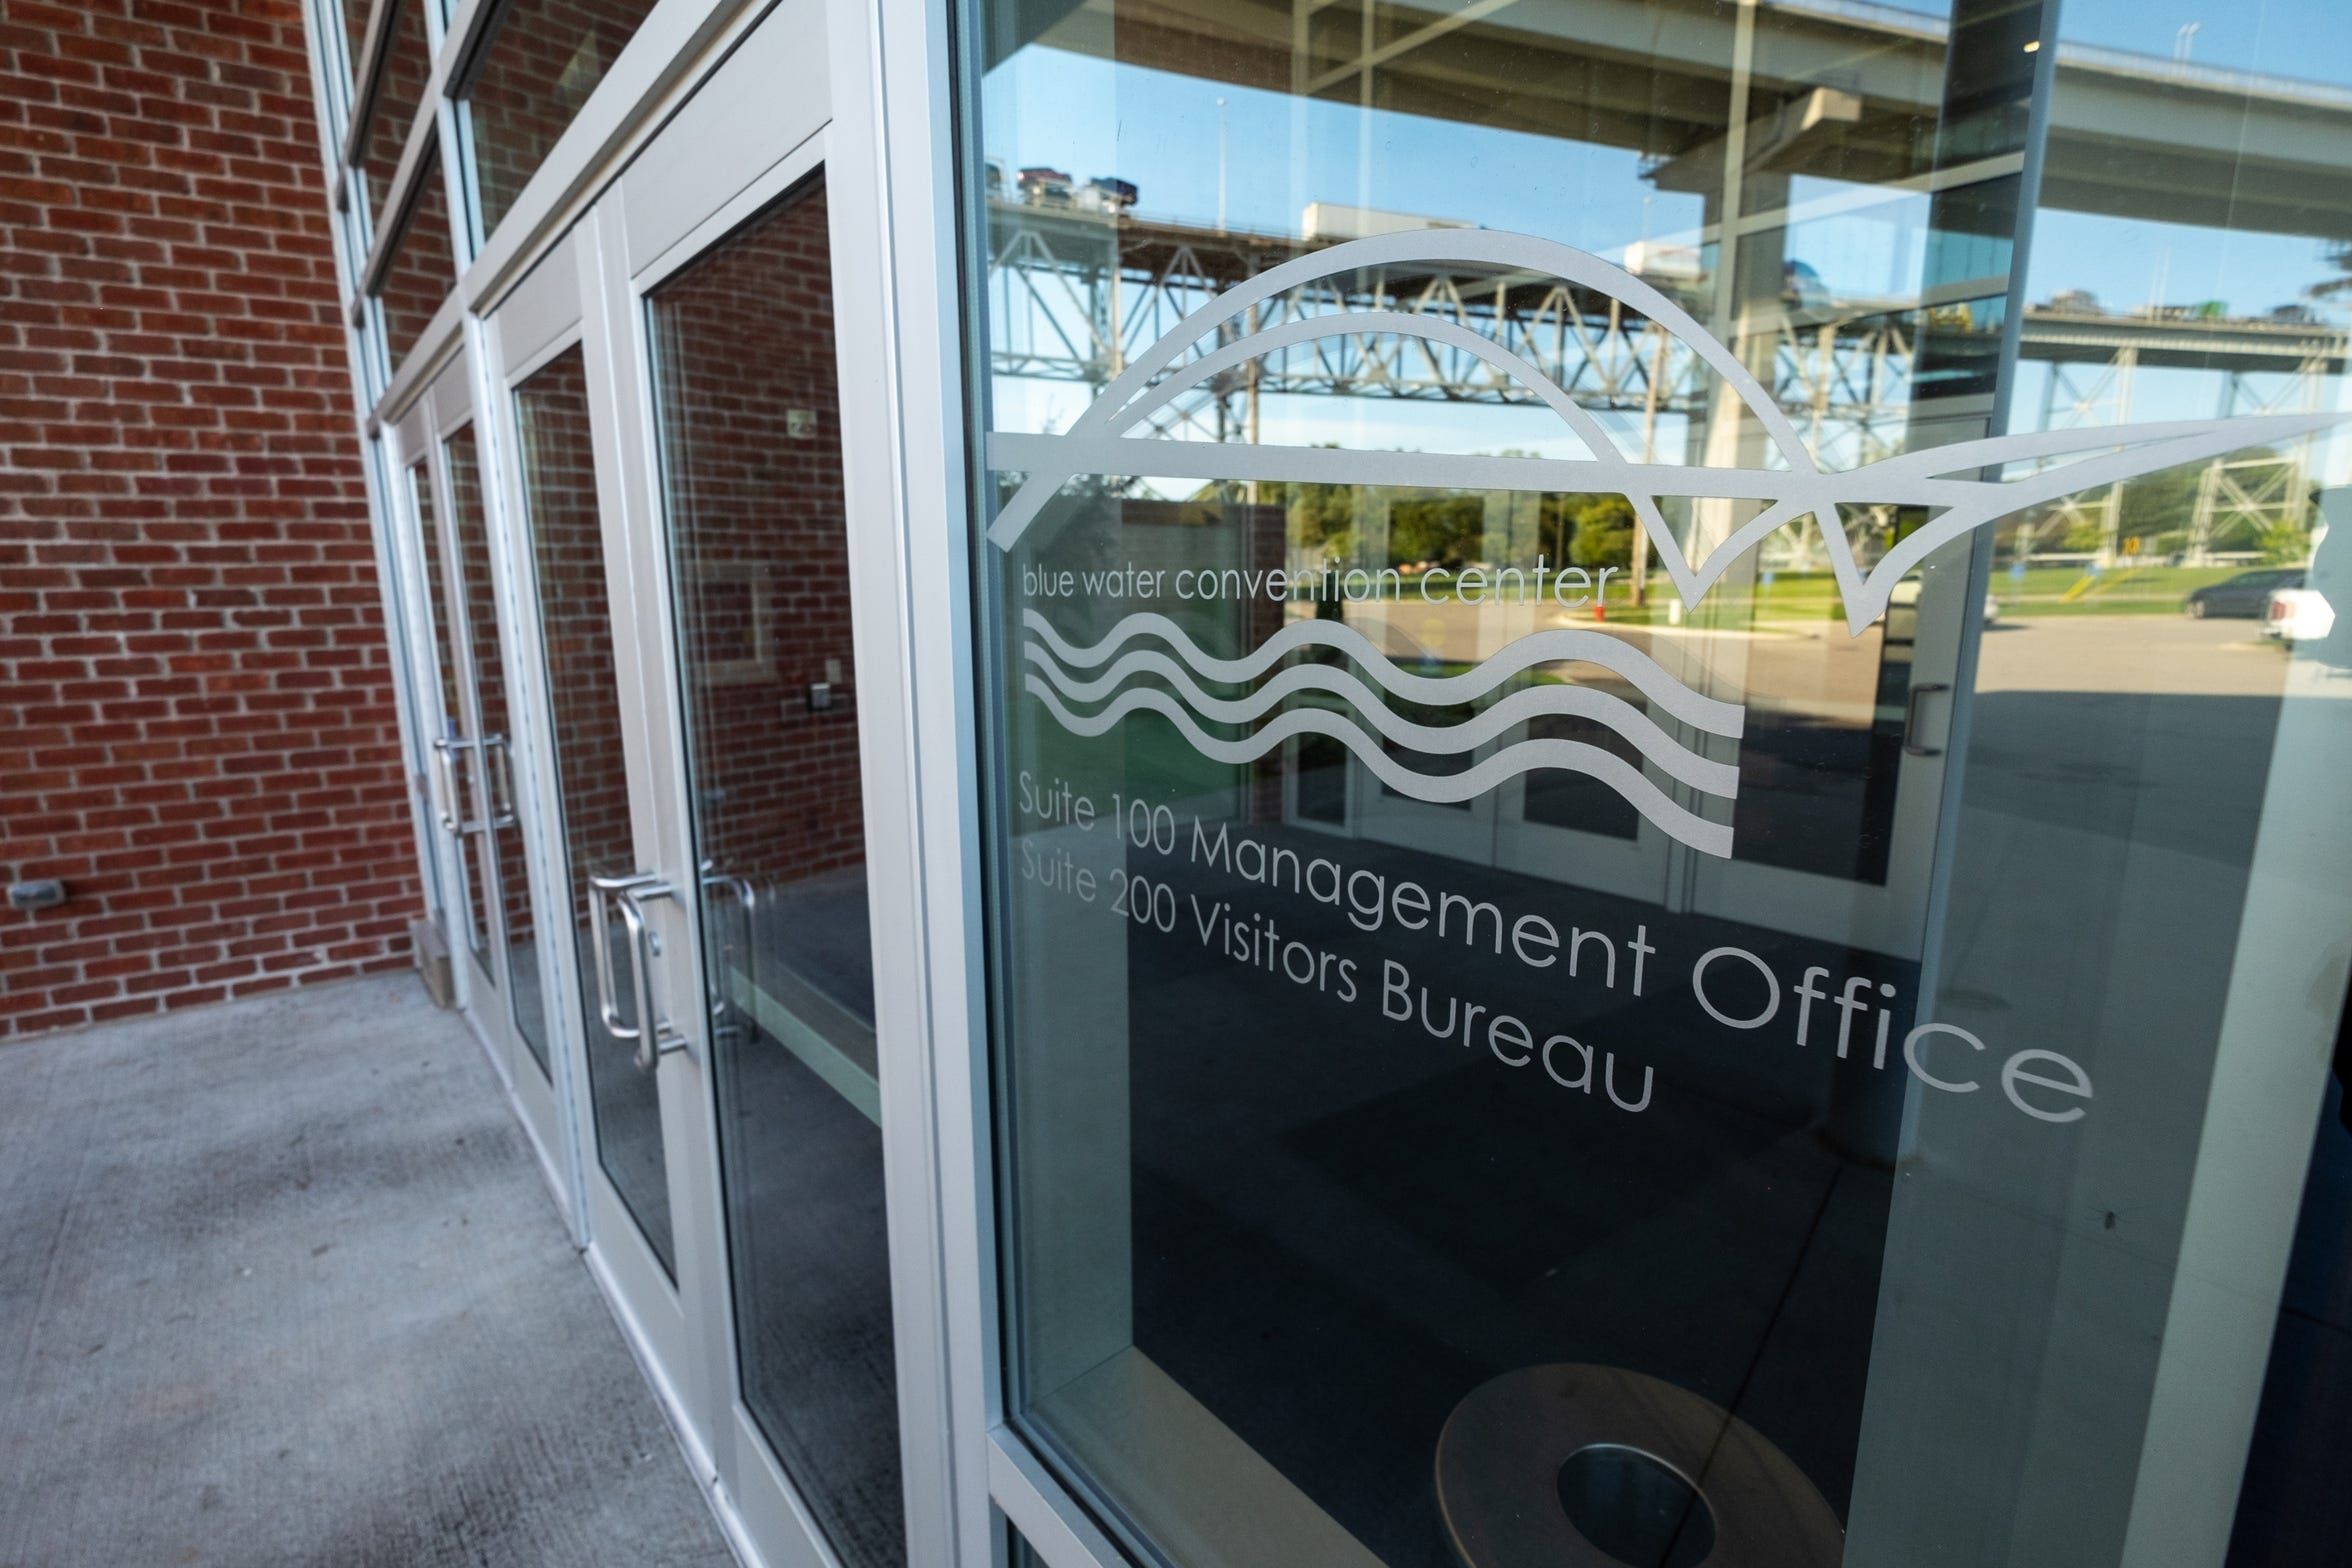 Part of the city's use for its MDOT mitigation funds over the last decade has been subsidizing the Blue Water Convention Center.